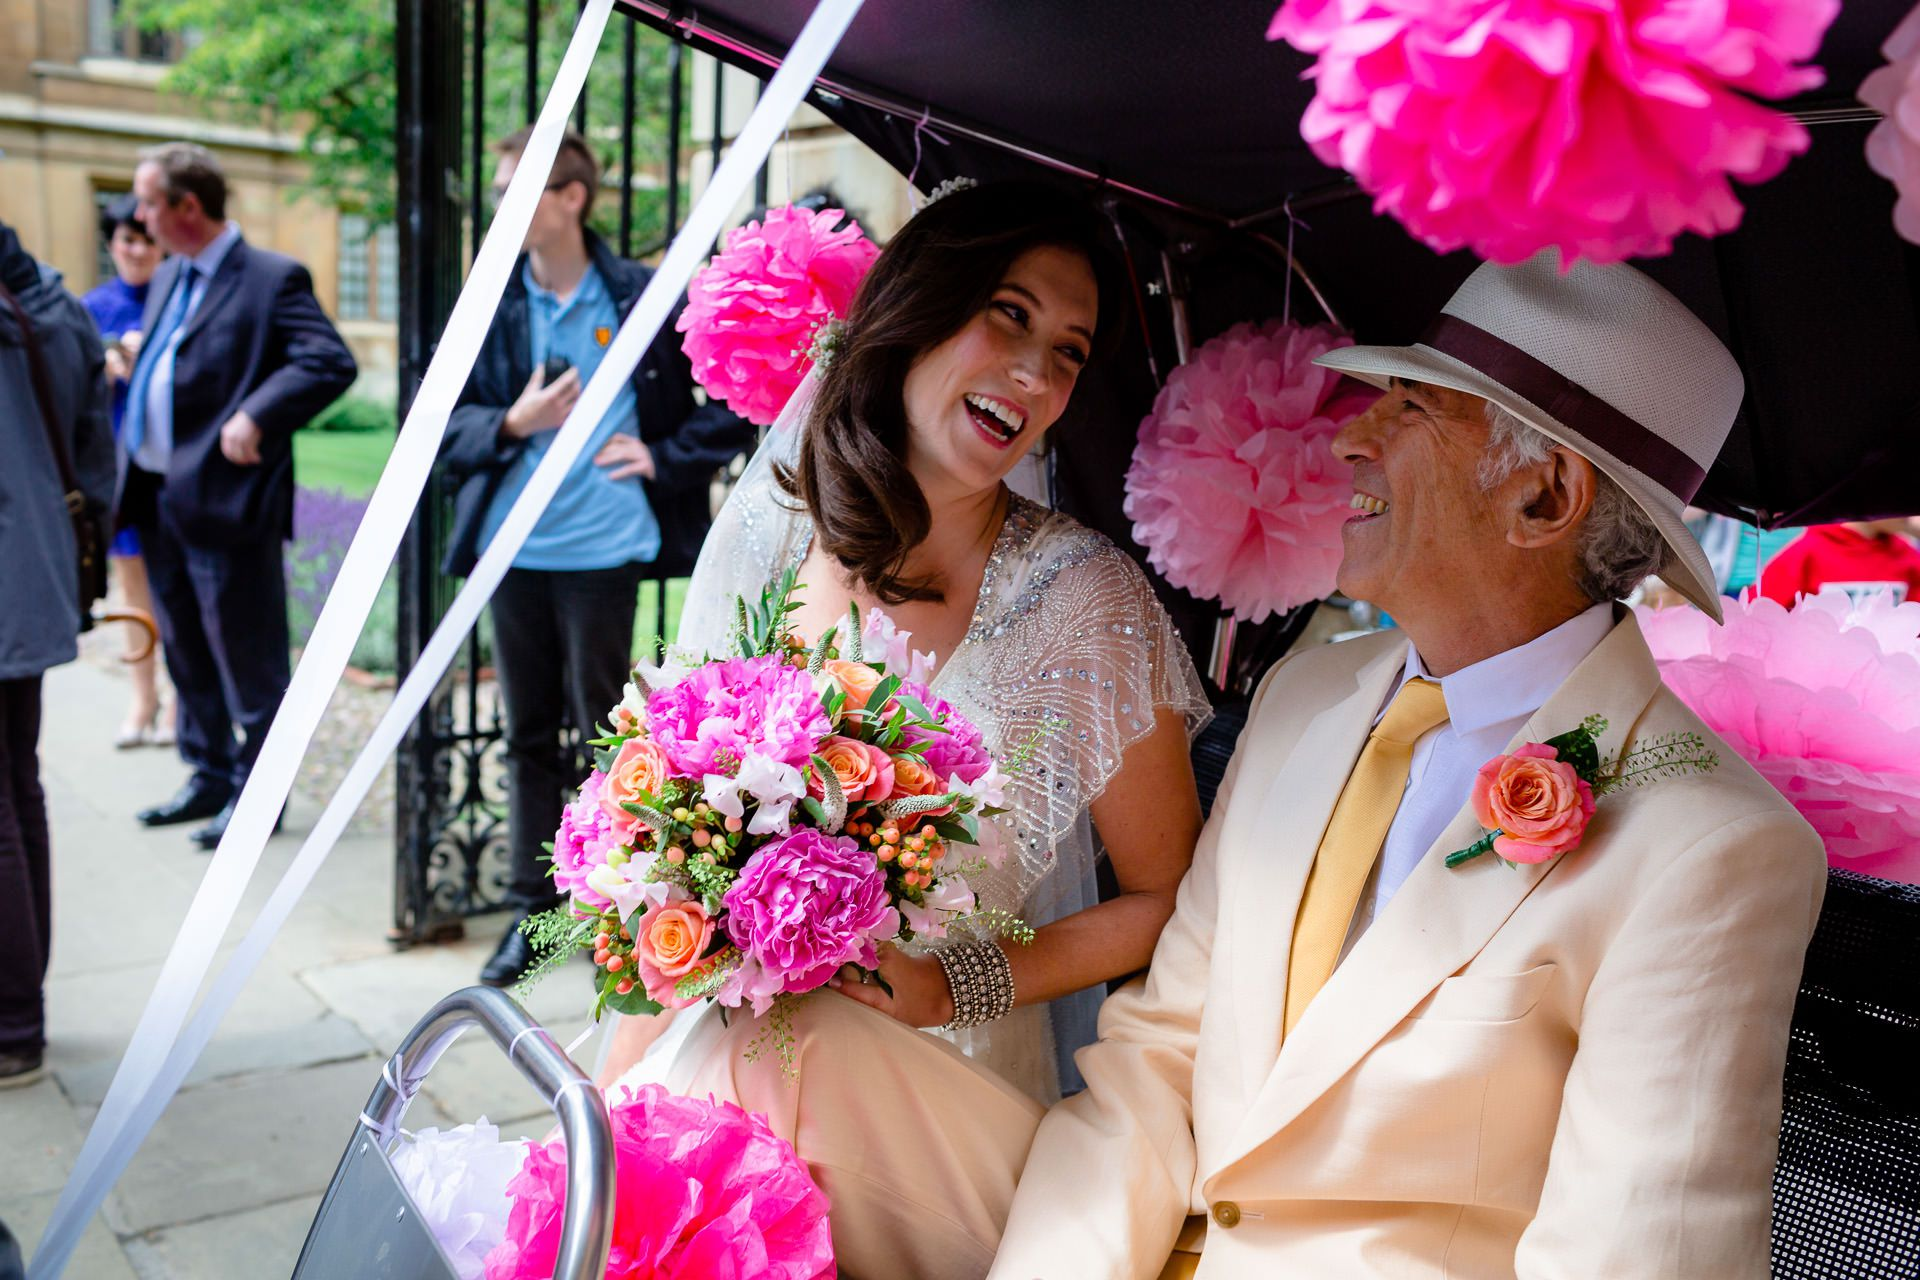 julia with flowers and her father